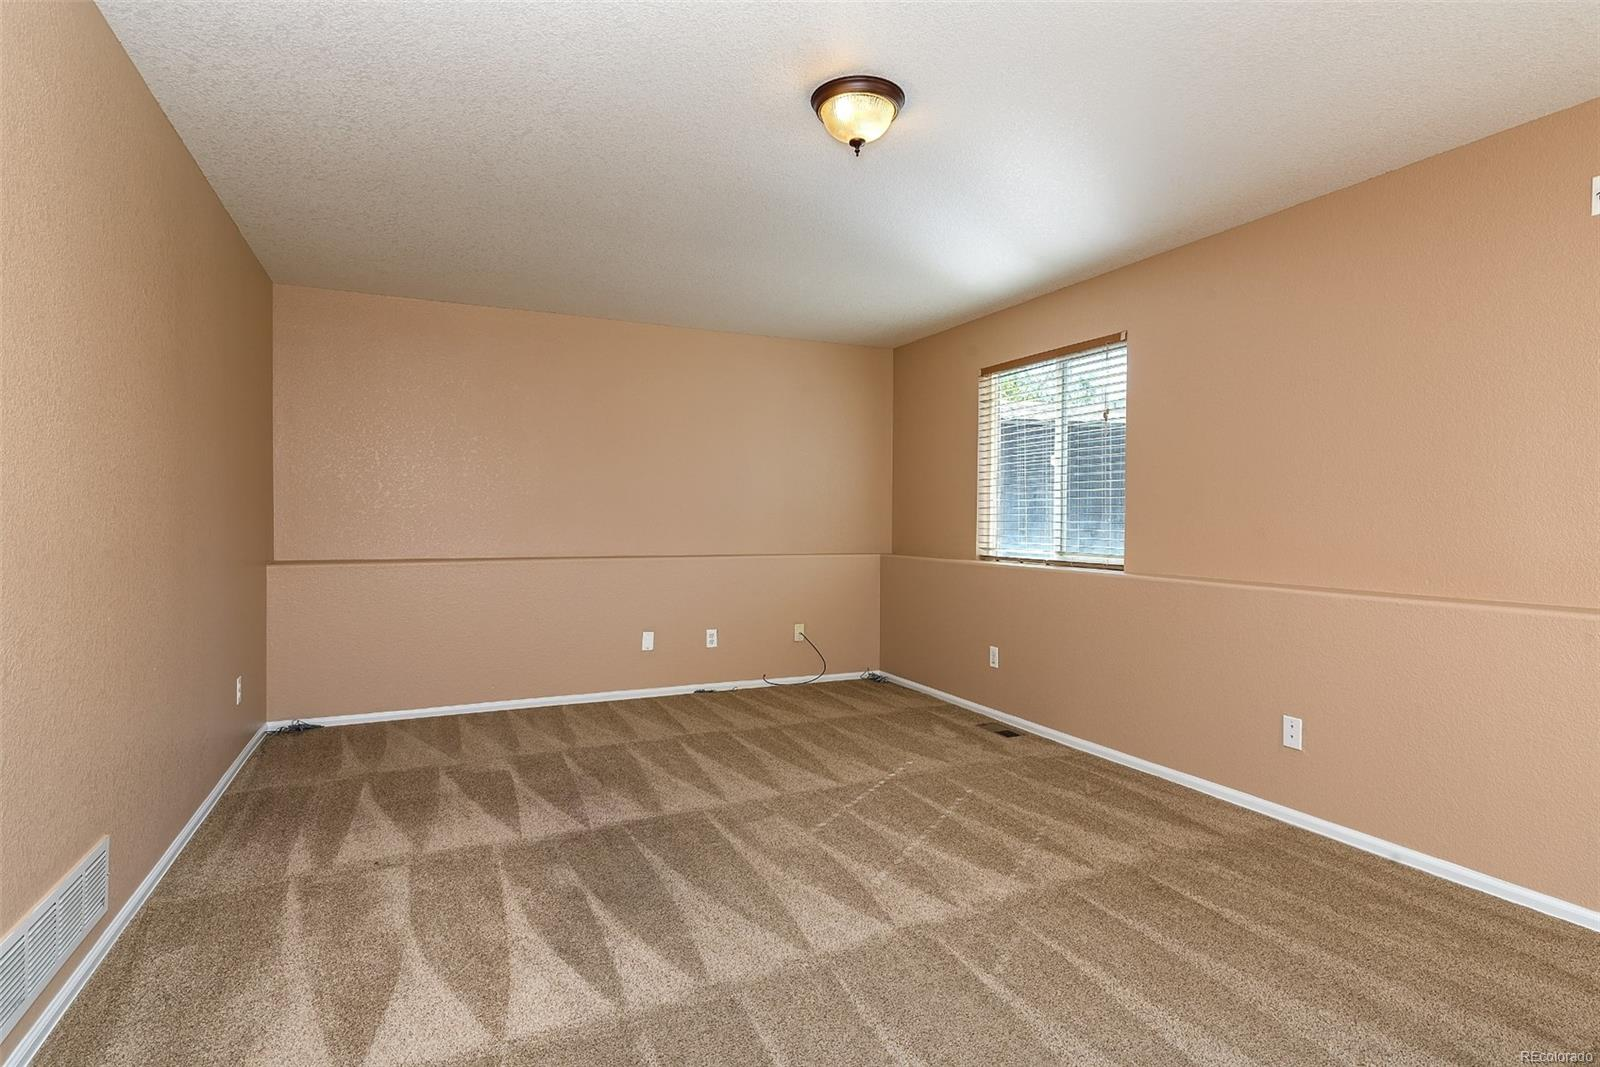 Huge lower level family room wired for surround sound!